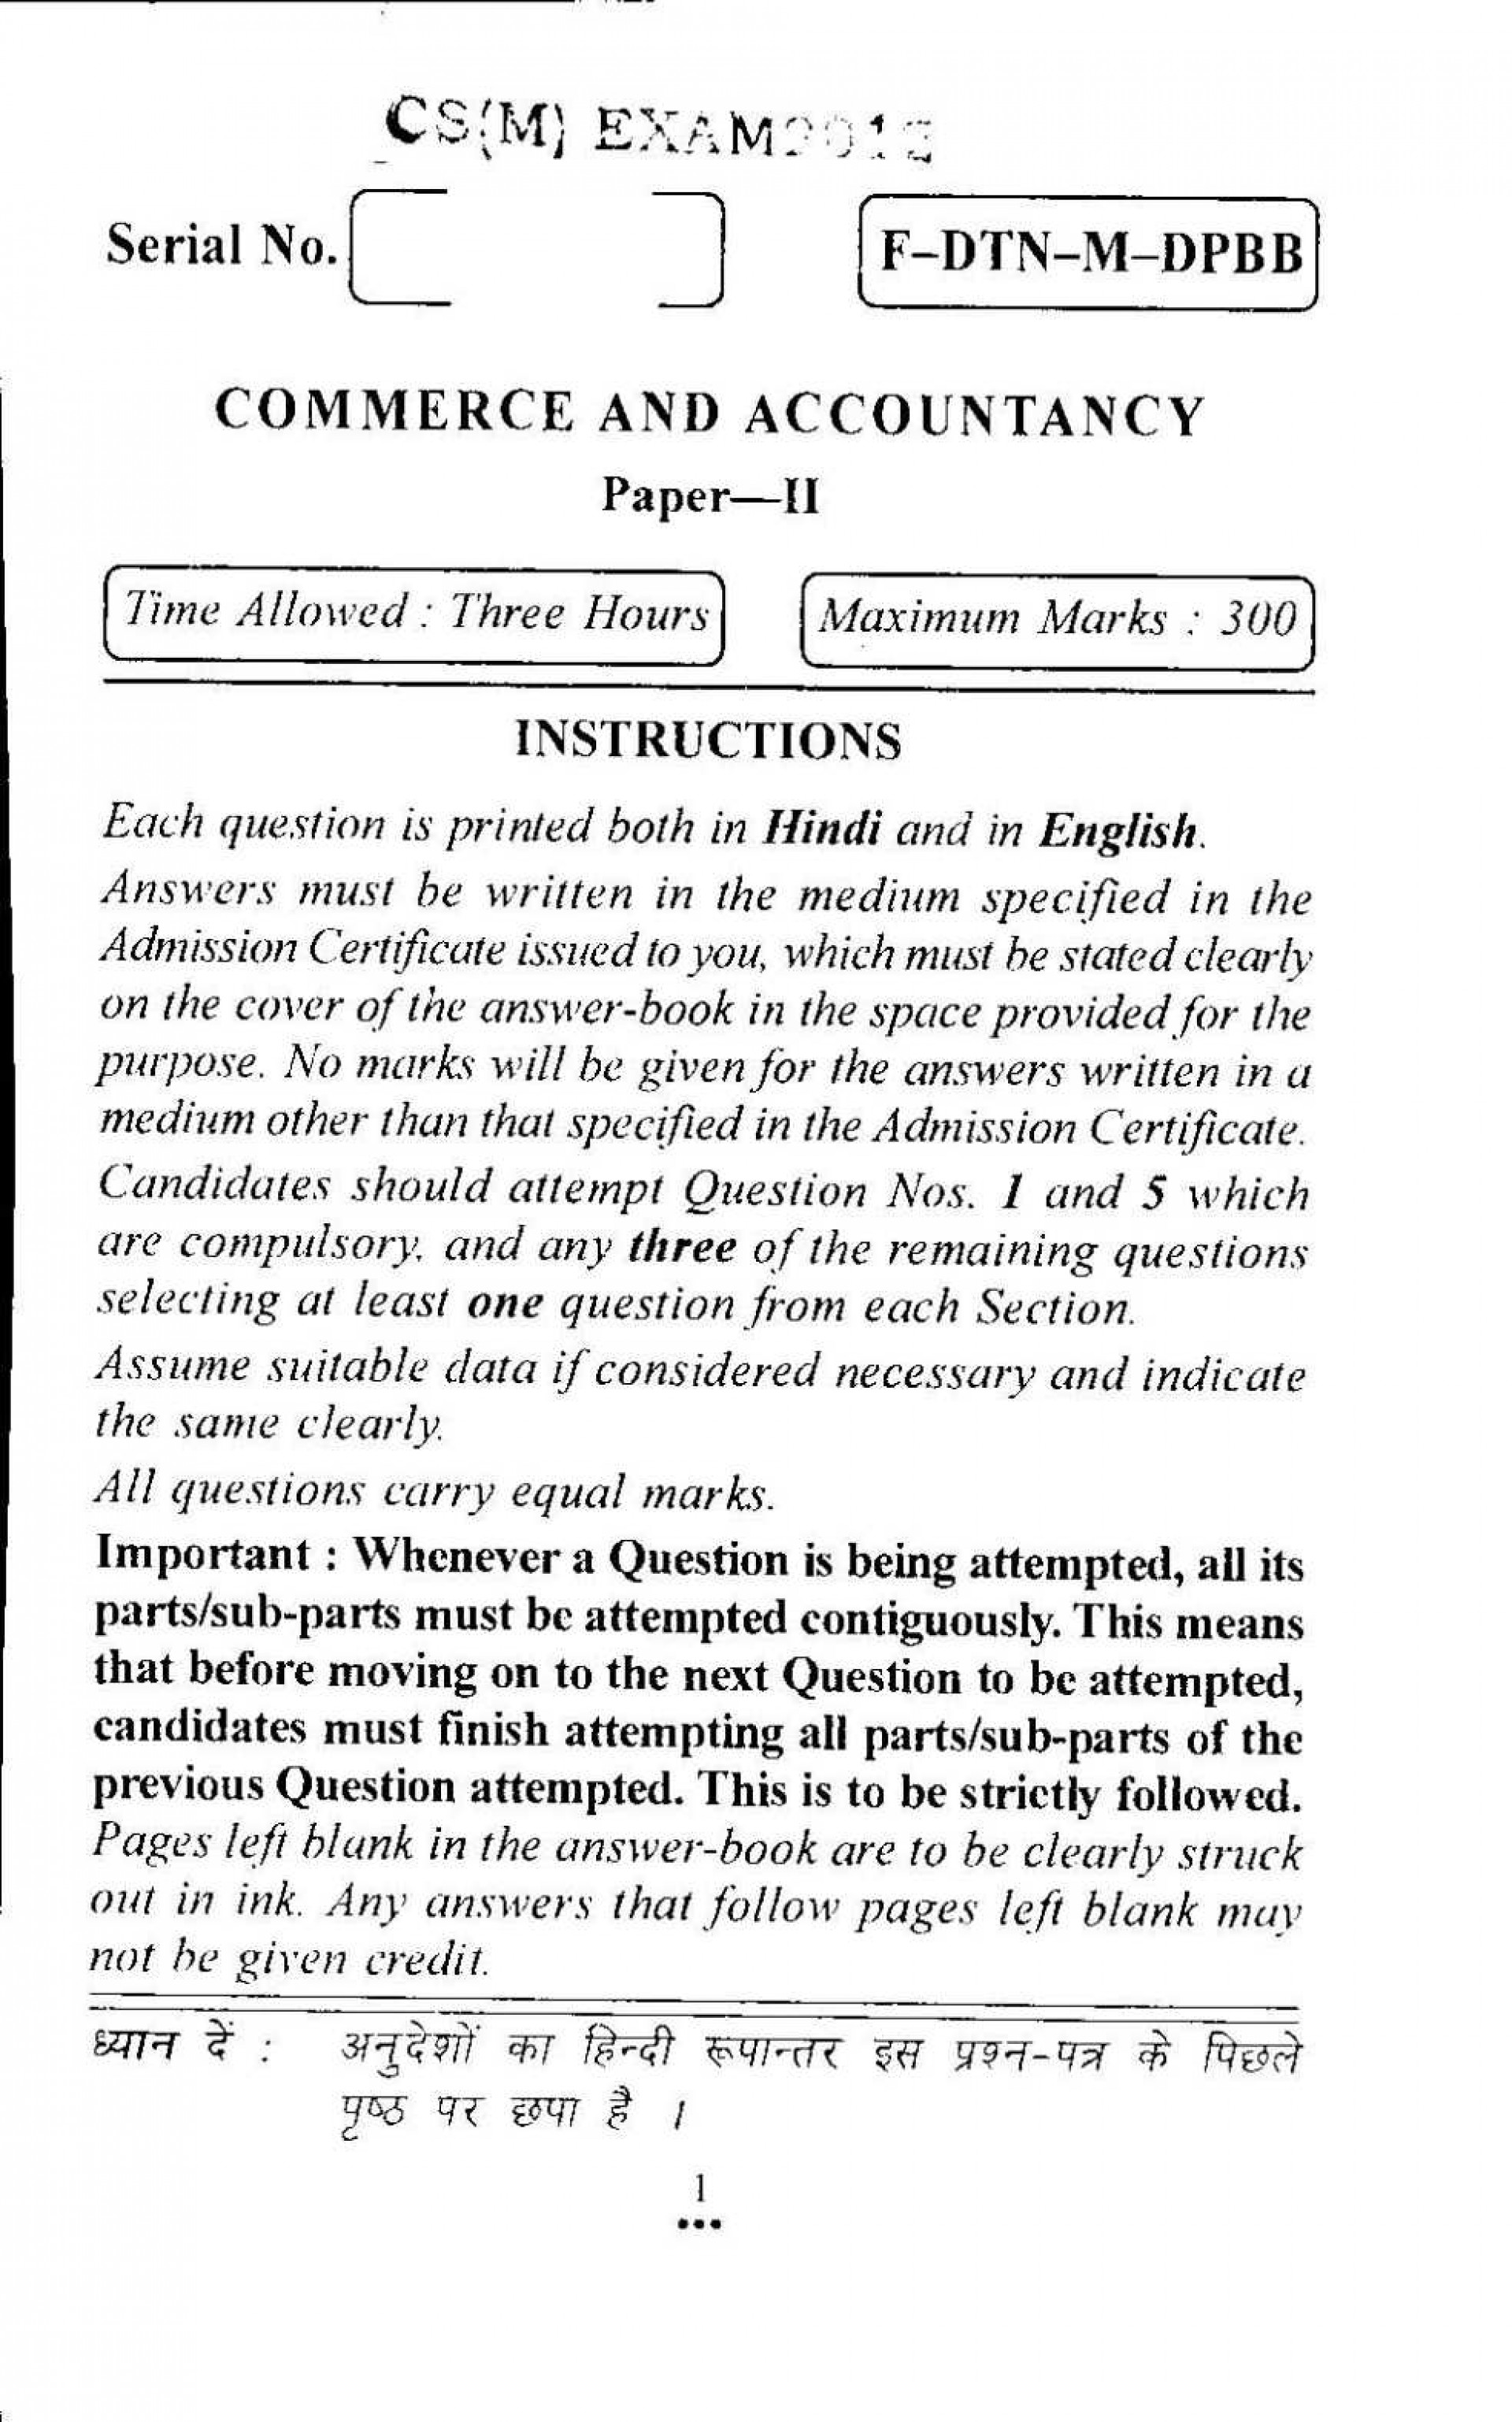 014 What Is An American Essay Example Civil Services Examination Commerce And Accountancy Paper Ii Previous Years Que Stupendous Thesis Your Dream Ideas 1920